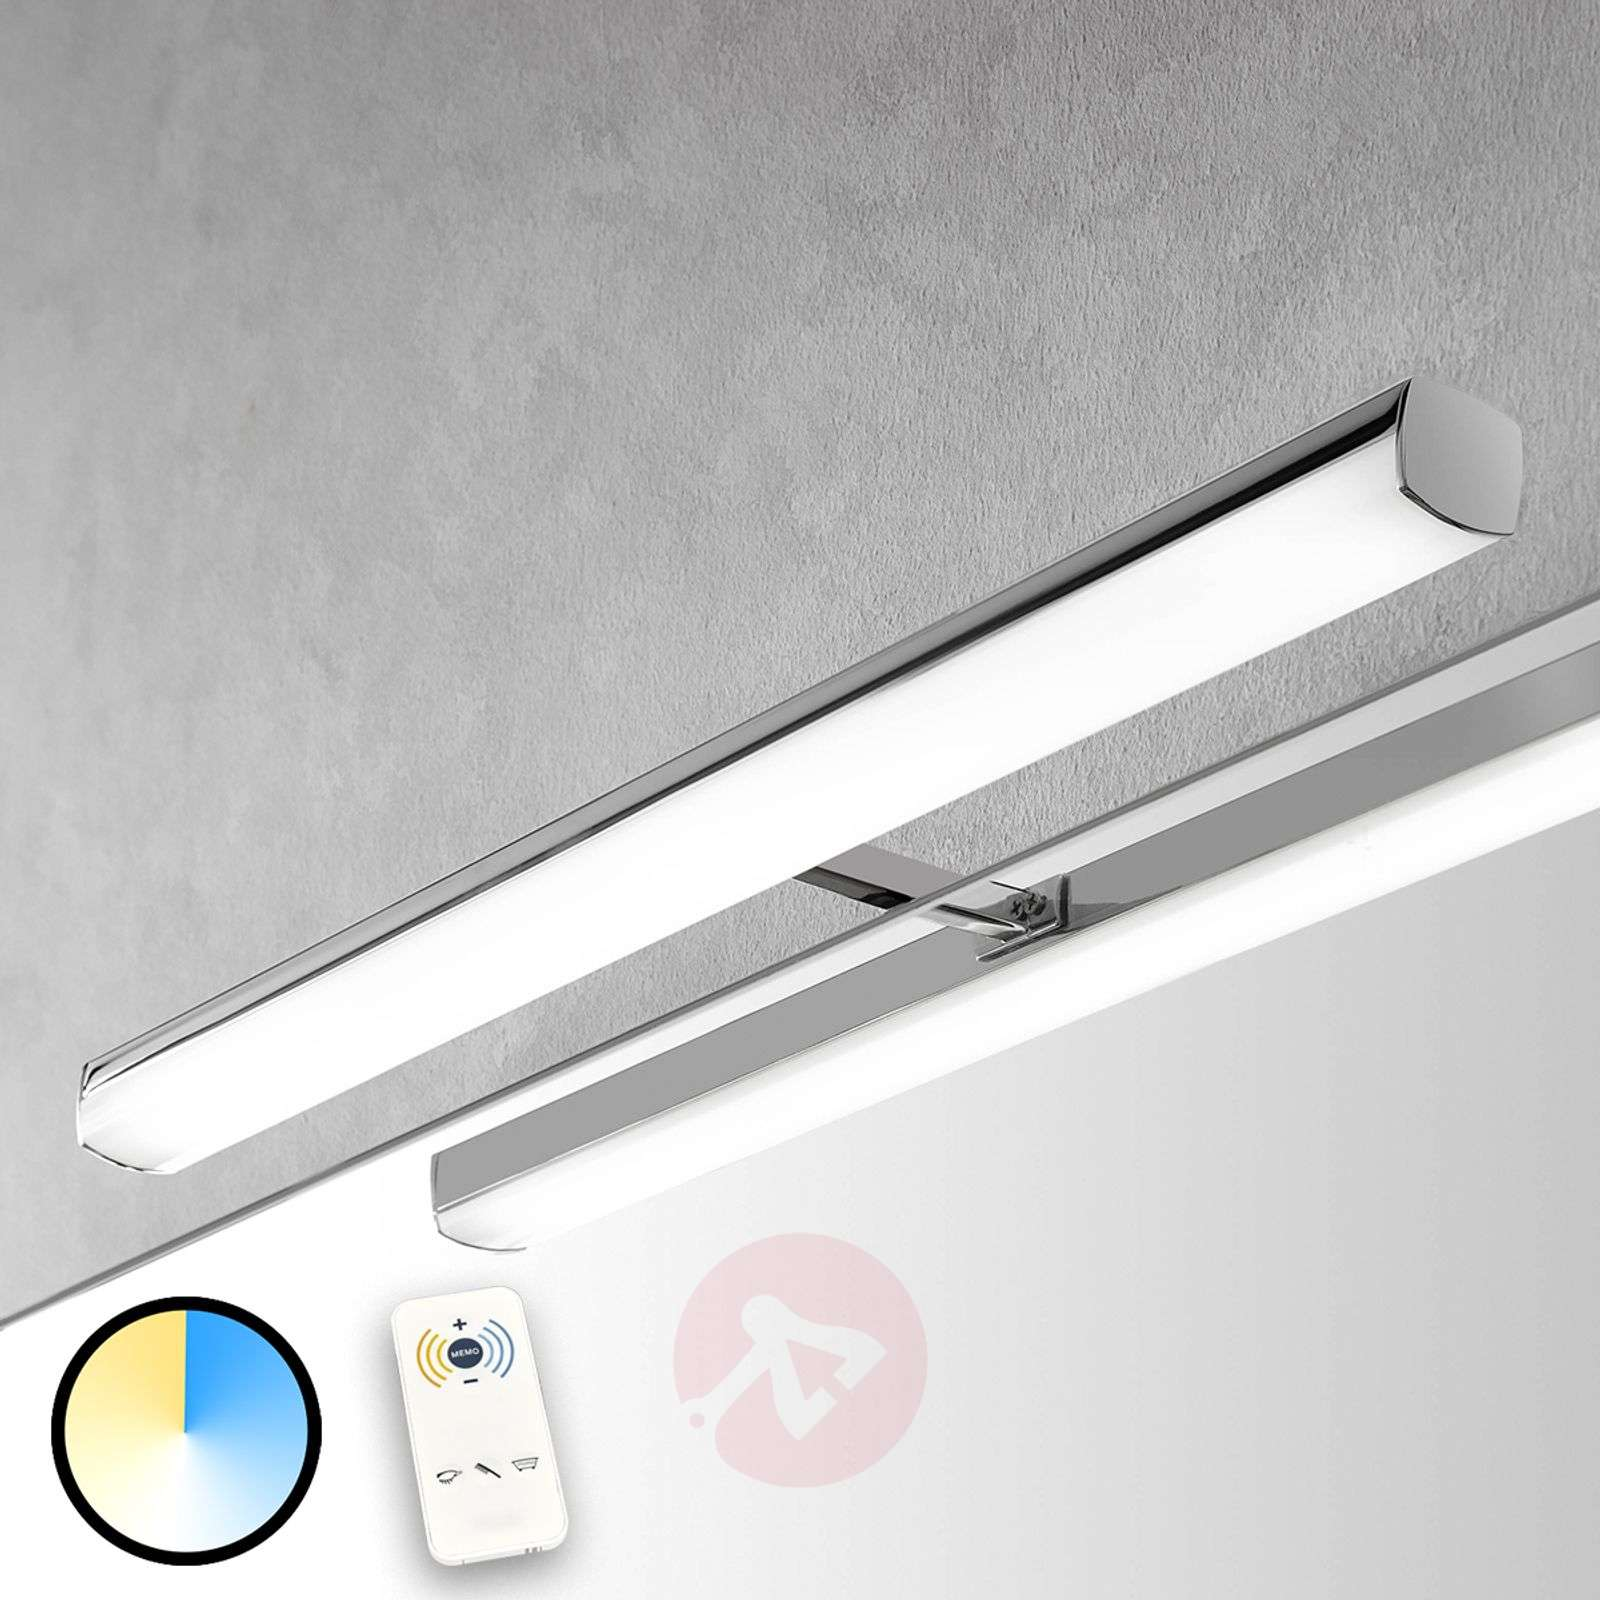 ... LED Bathroom Mirror Light Atlaswith Remote Control 3052037 04 ...